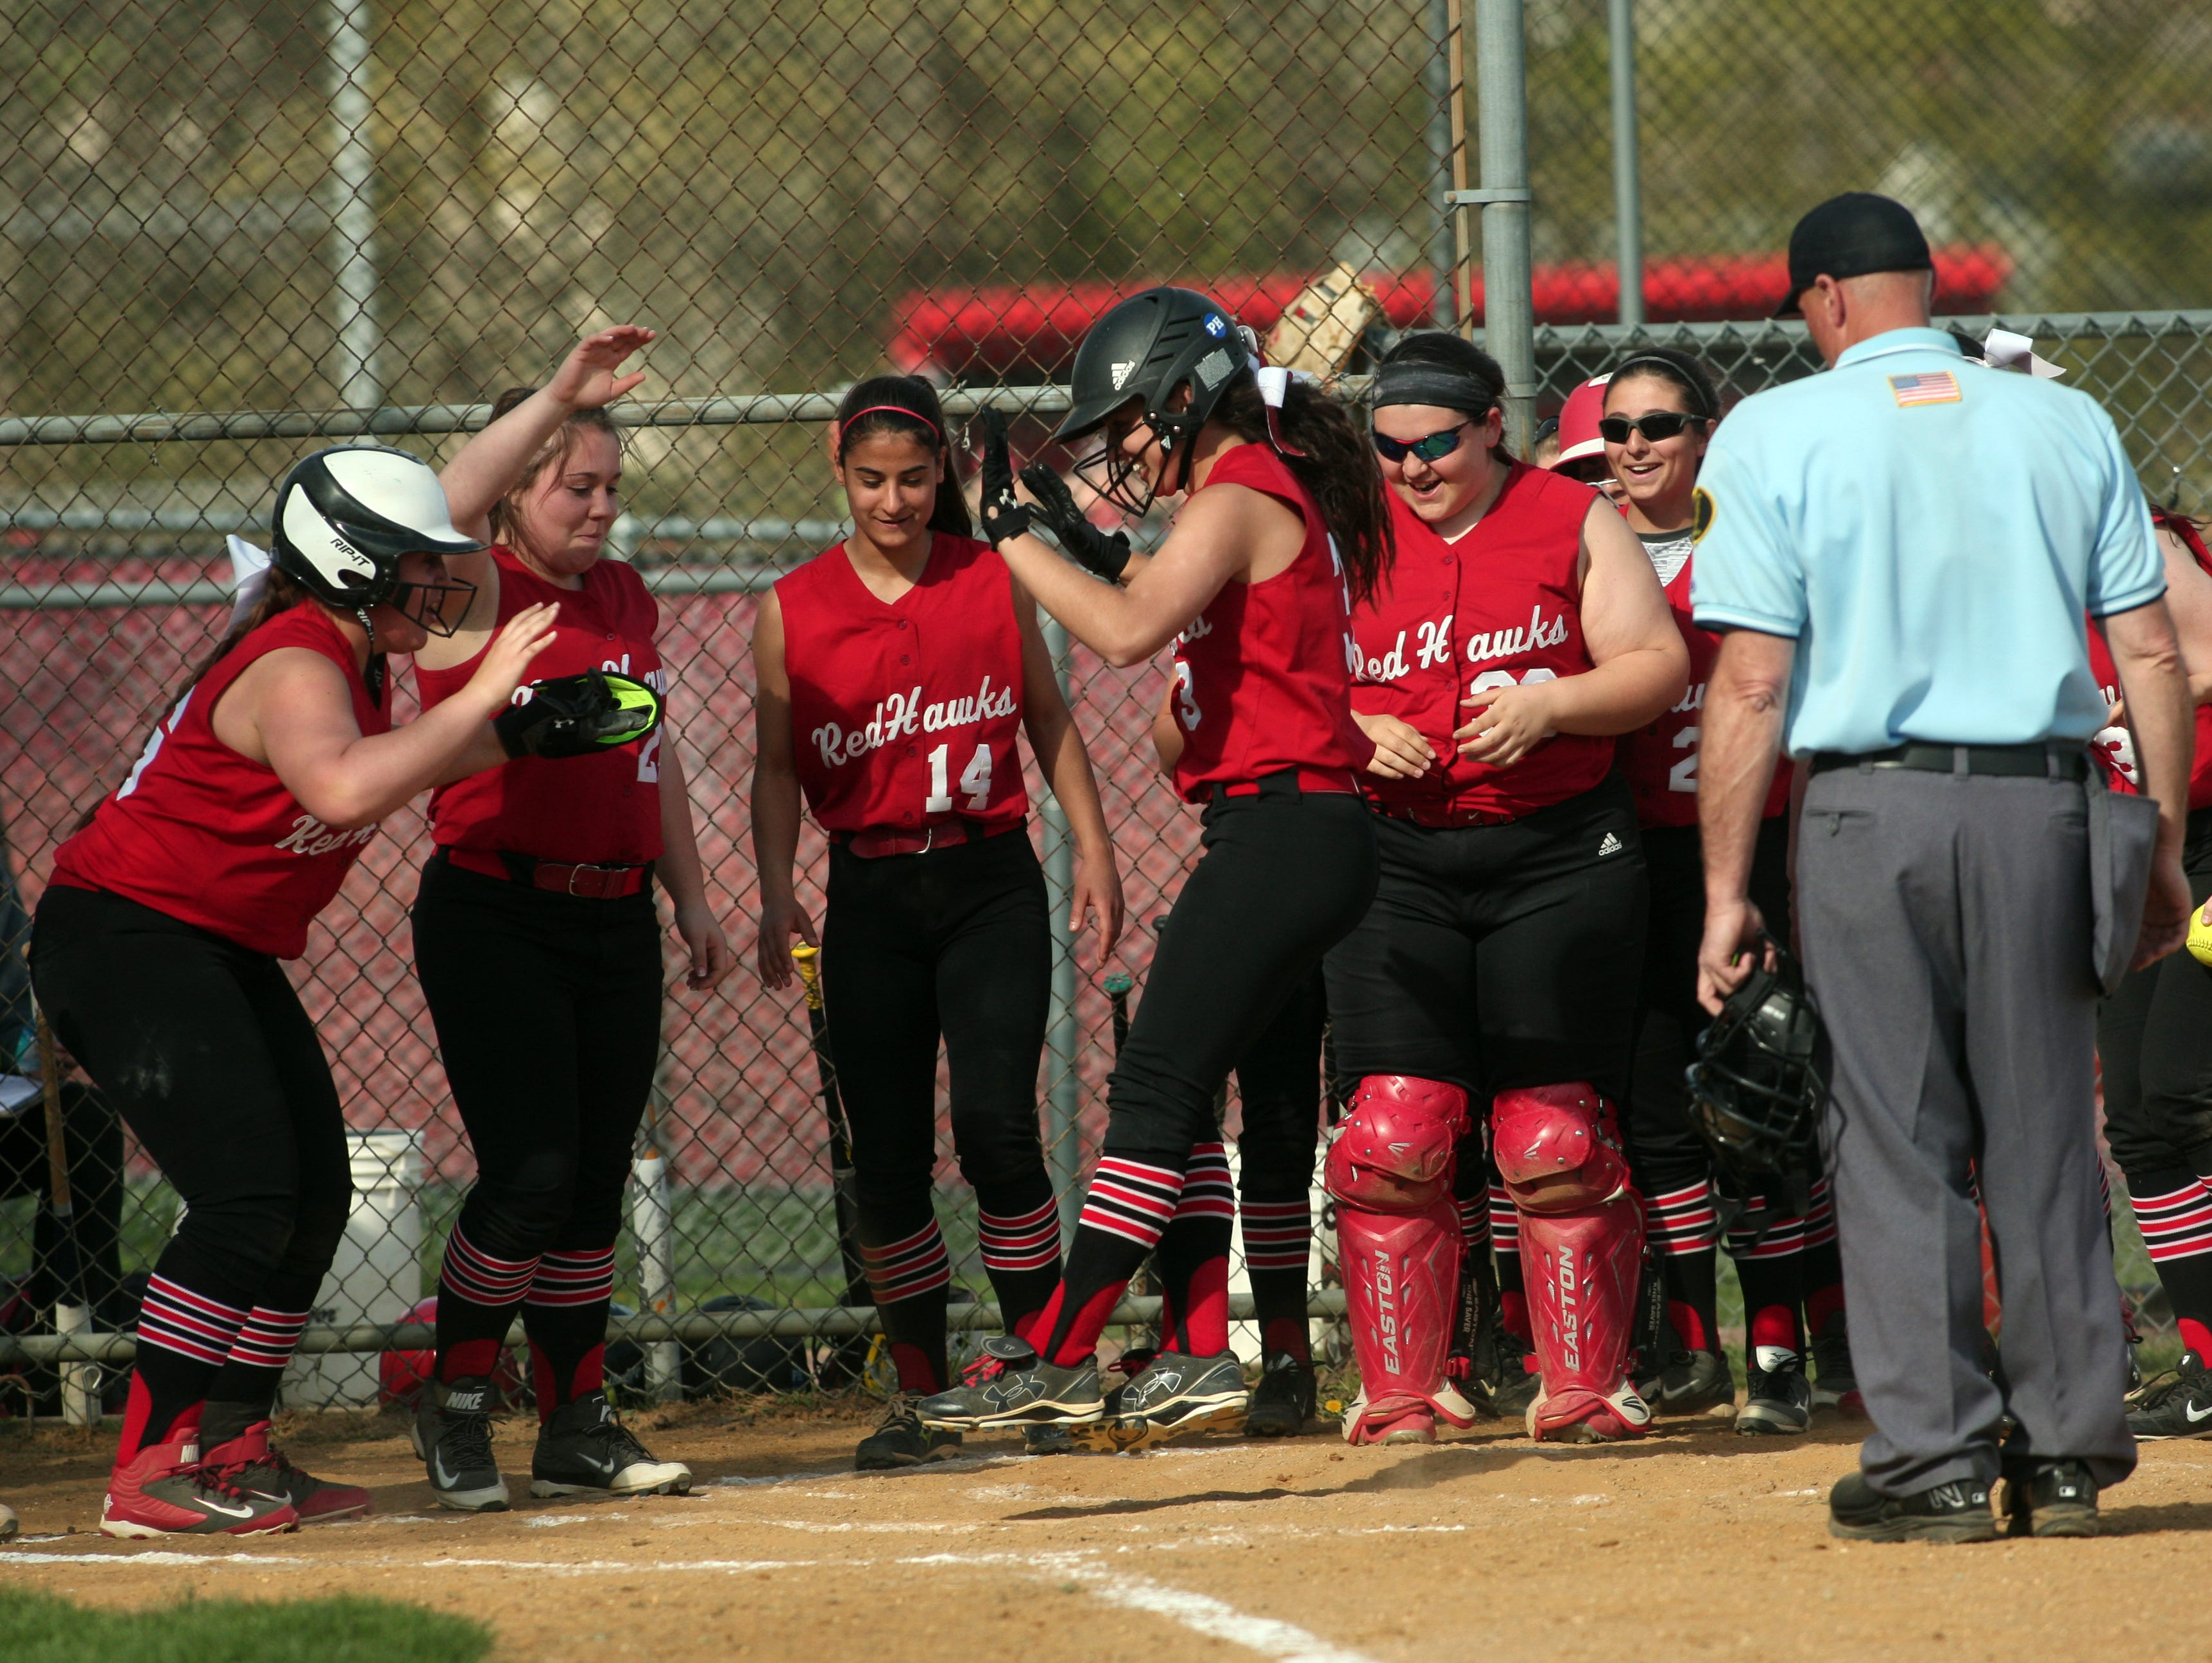 Parsippany's Kaila Migliazza (3) is congratulated after a home run against Mendham during their first round Morris County Tournament game on April 28.